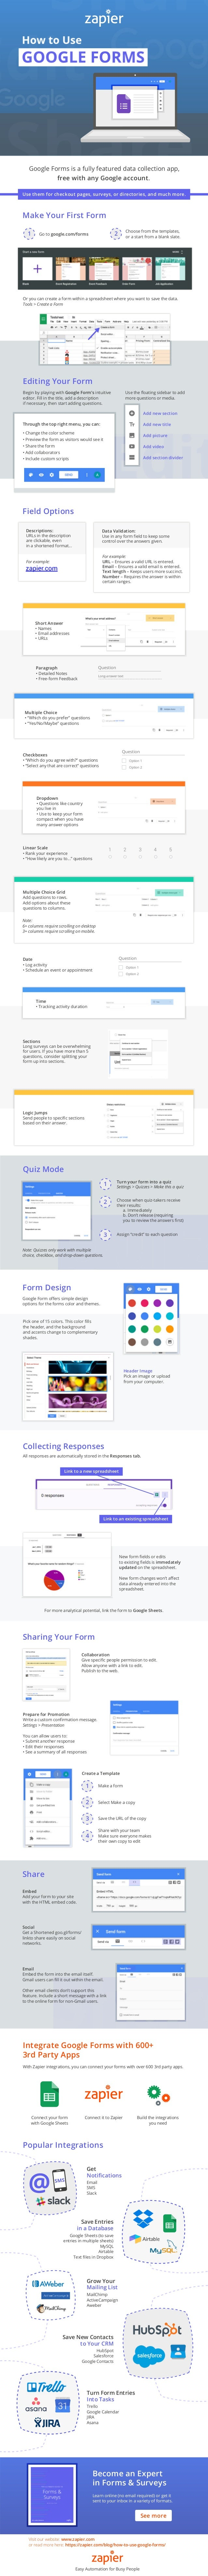 Google Forms is a fully featured data collection app, Make Your First Form Go to google.com/forms Collaboration Give speci...